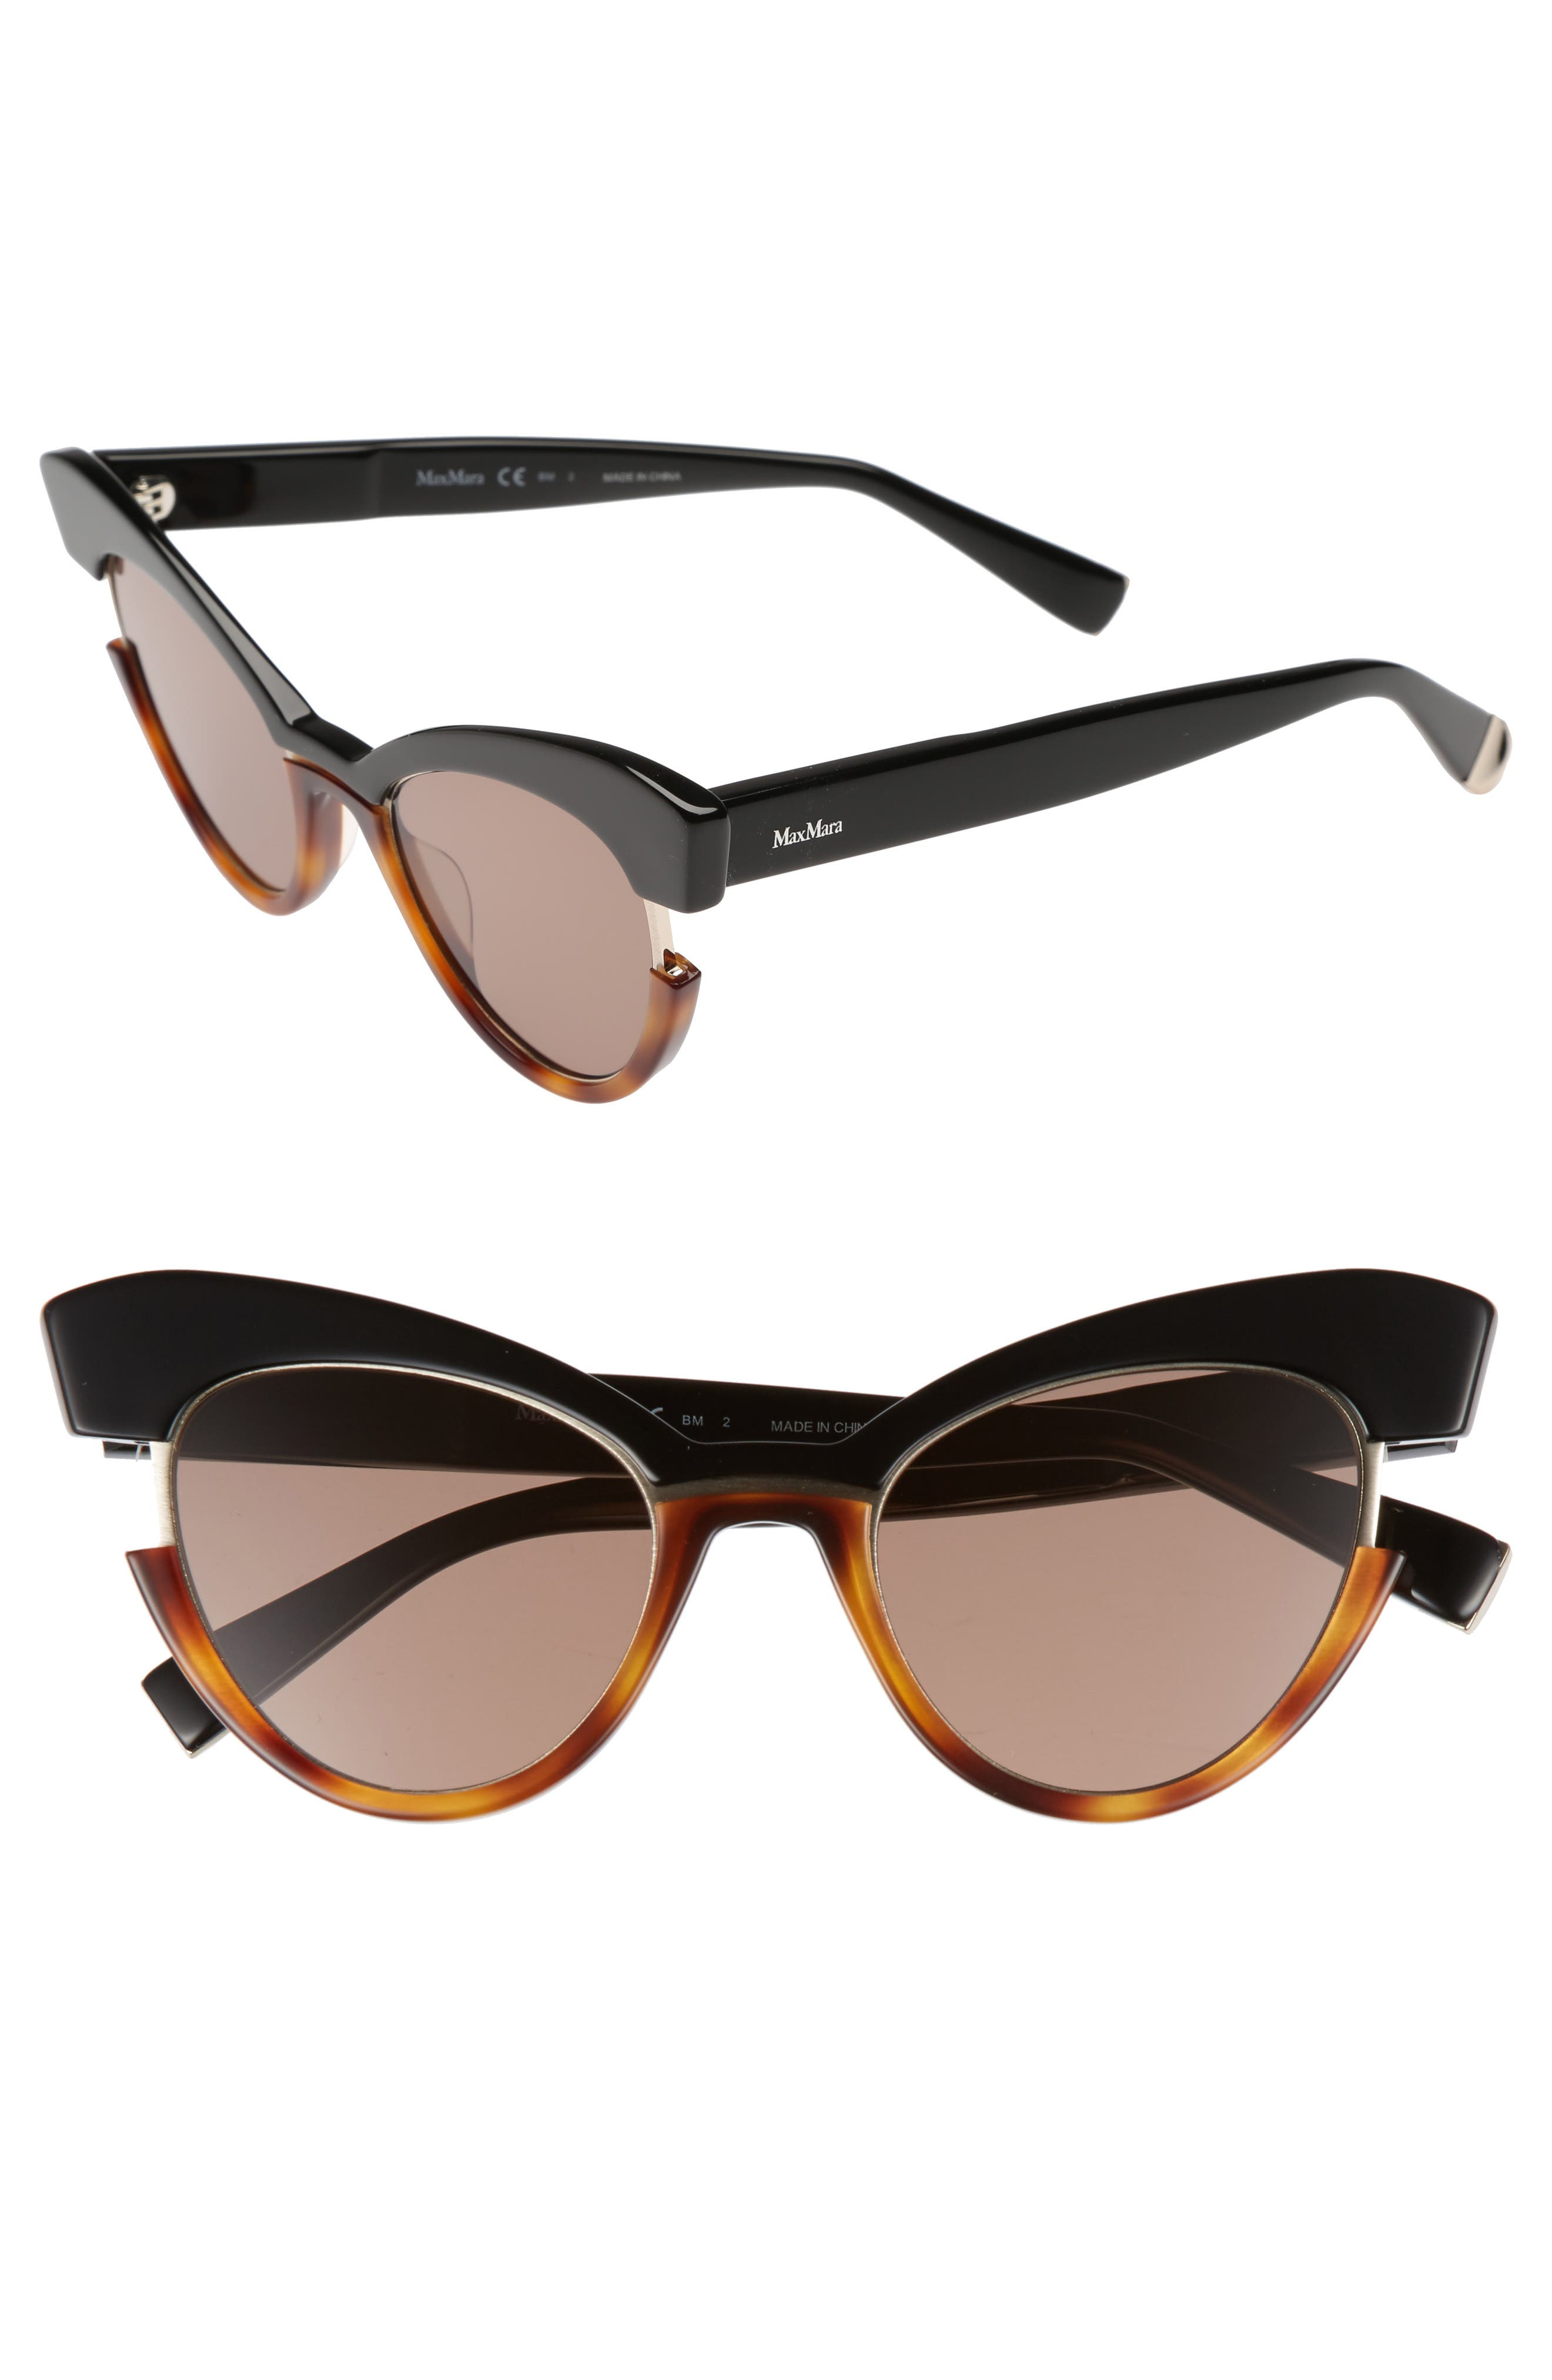 49mm Gradient Lens Cat Eye Sunglasses,                             Main thumbnail 1, color,                             BLACK HAVANA